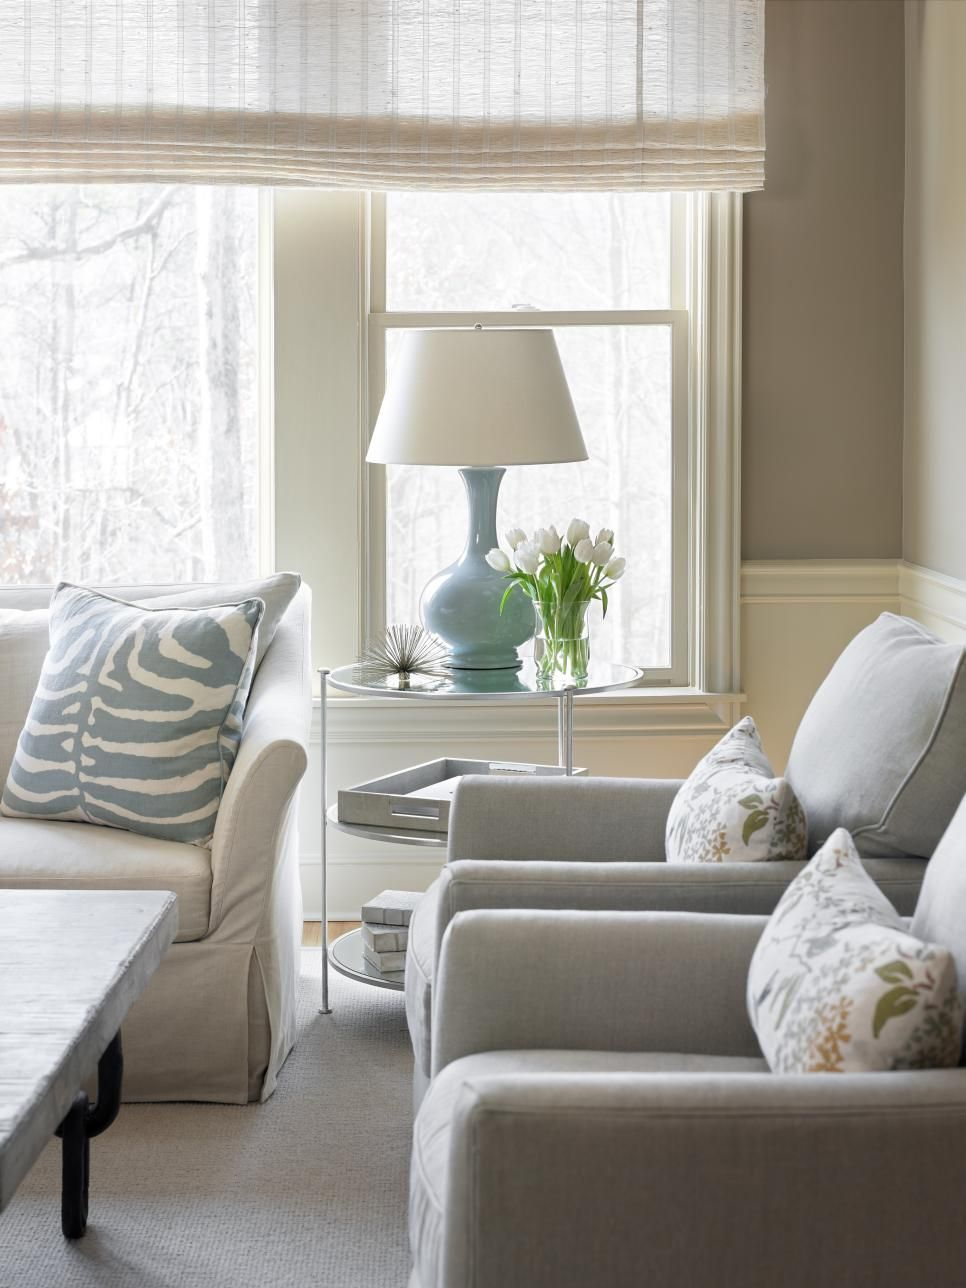 Sitting Room Interior Design: Pale Blue Accents Add Soft, Pretty Touches Of Color To